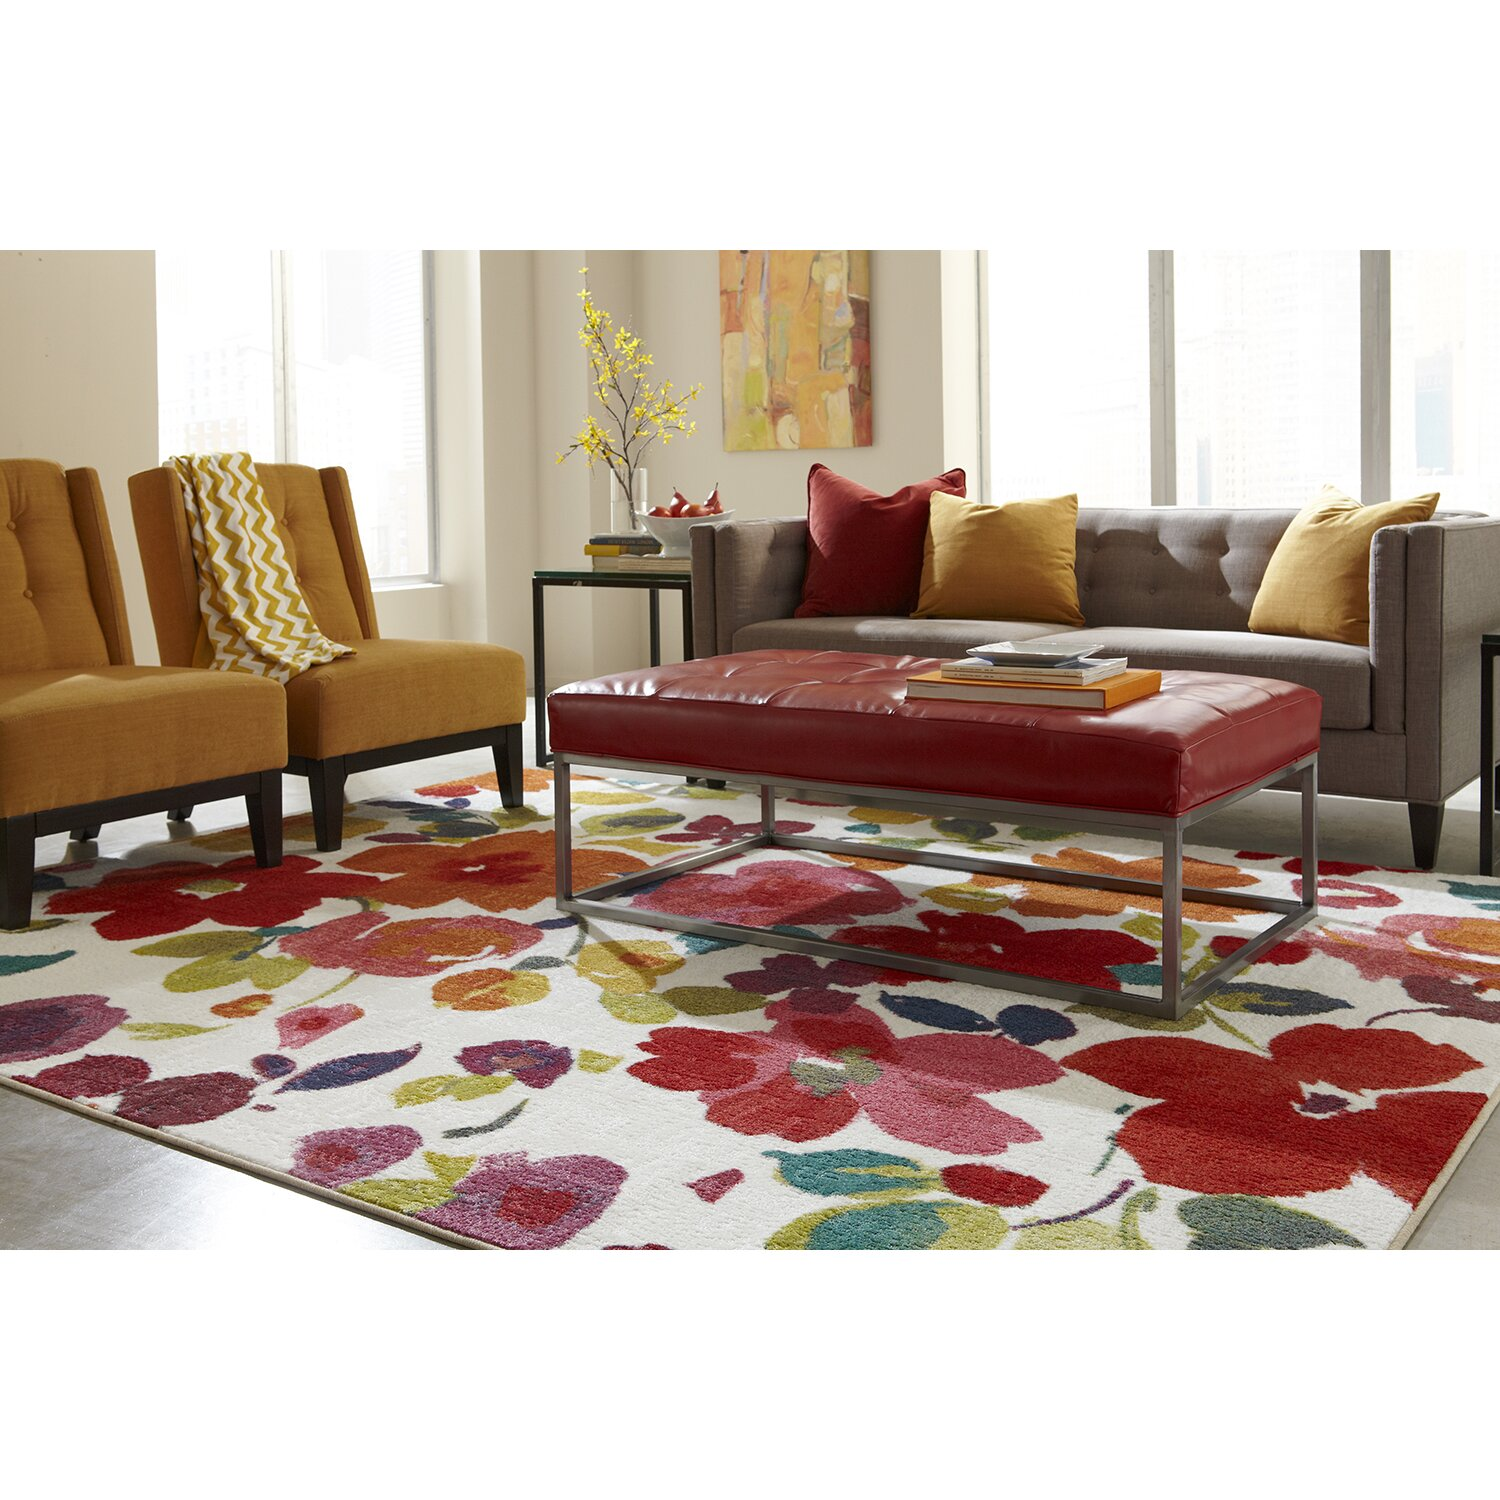 Red Living Room Rug Red Barrel Studio Channel Floral Multi Printed Area Rug Reviews